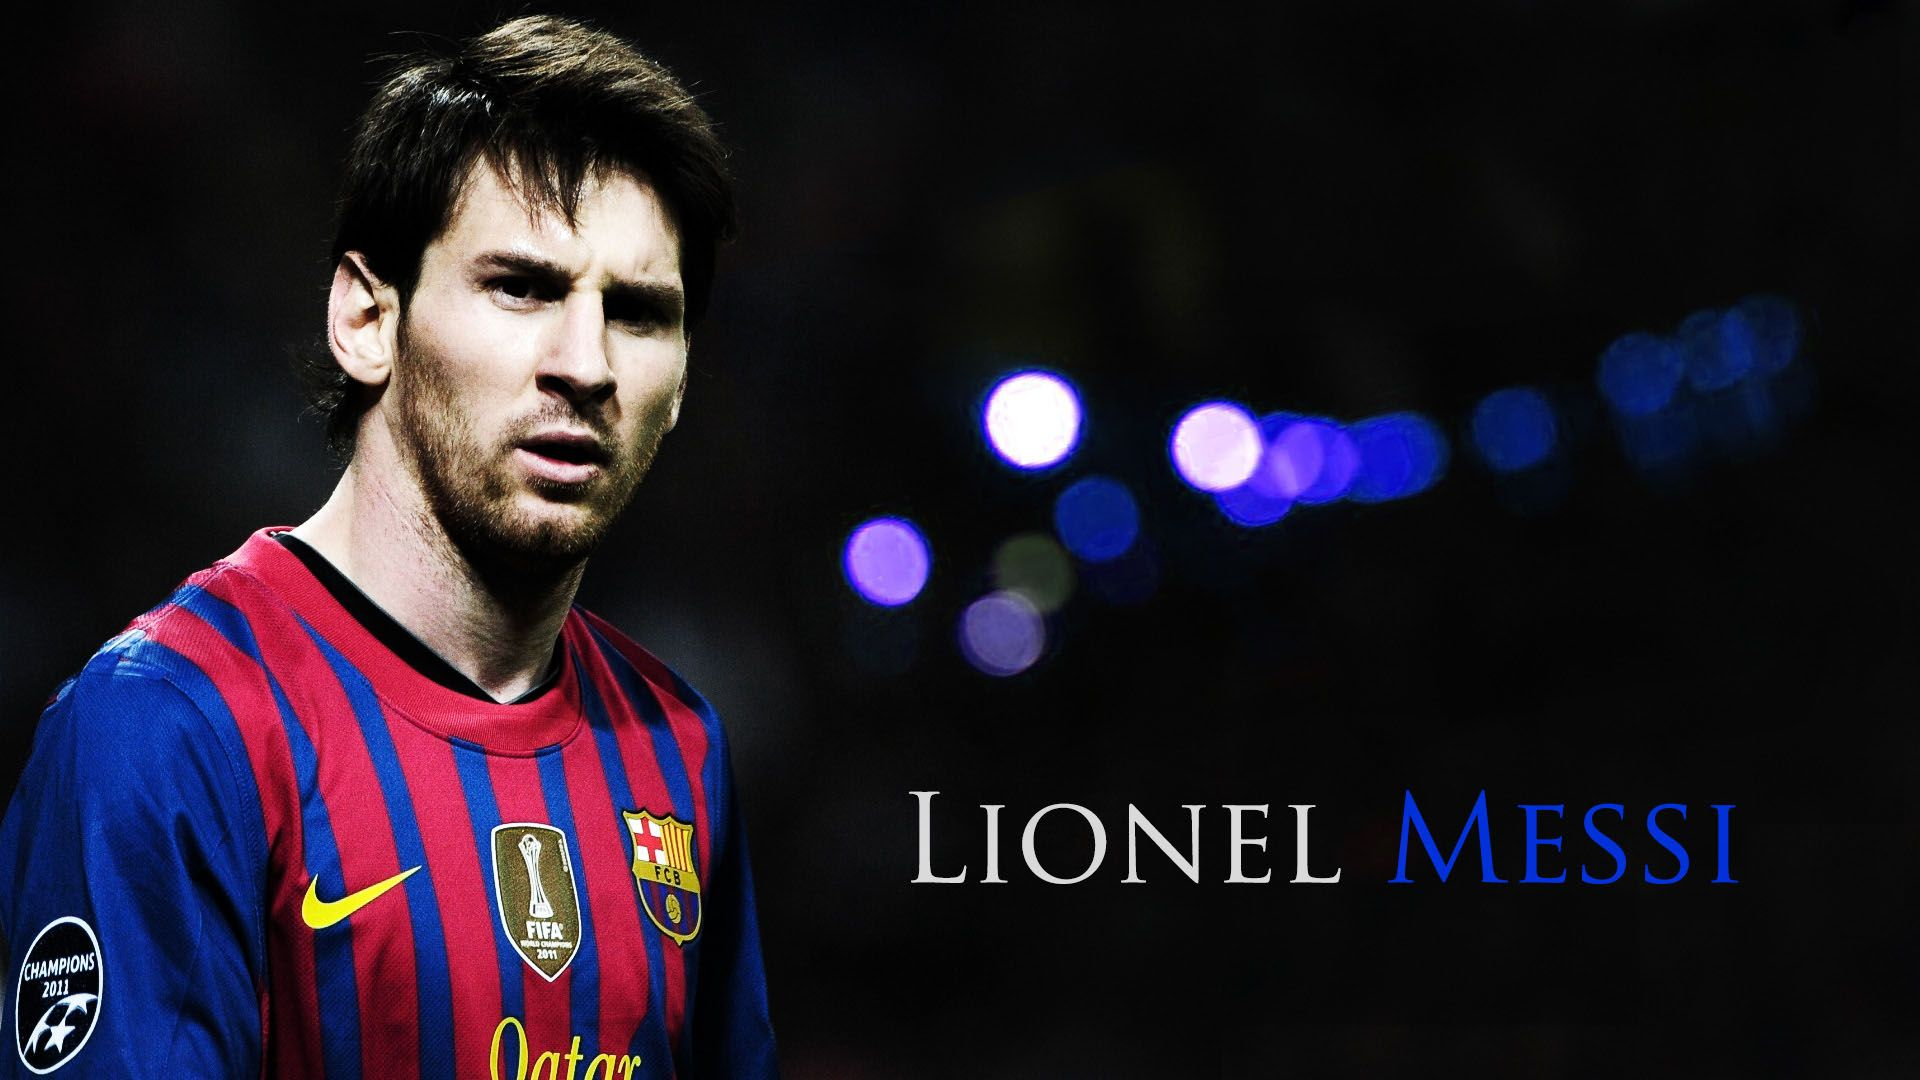 Download free Argentina's Lionel Messi Pictures